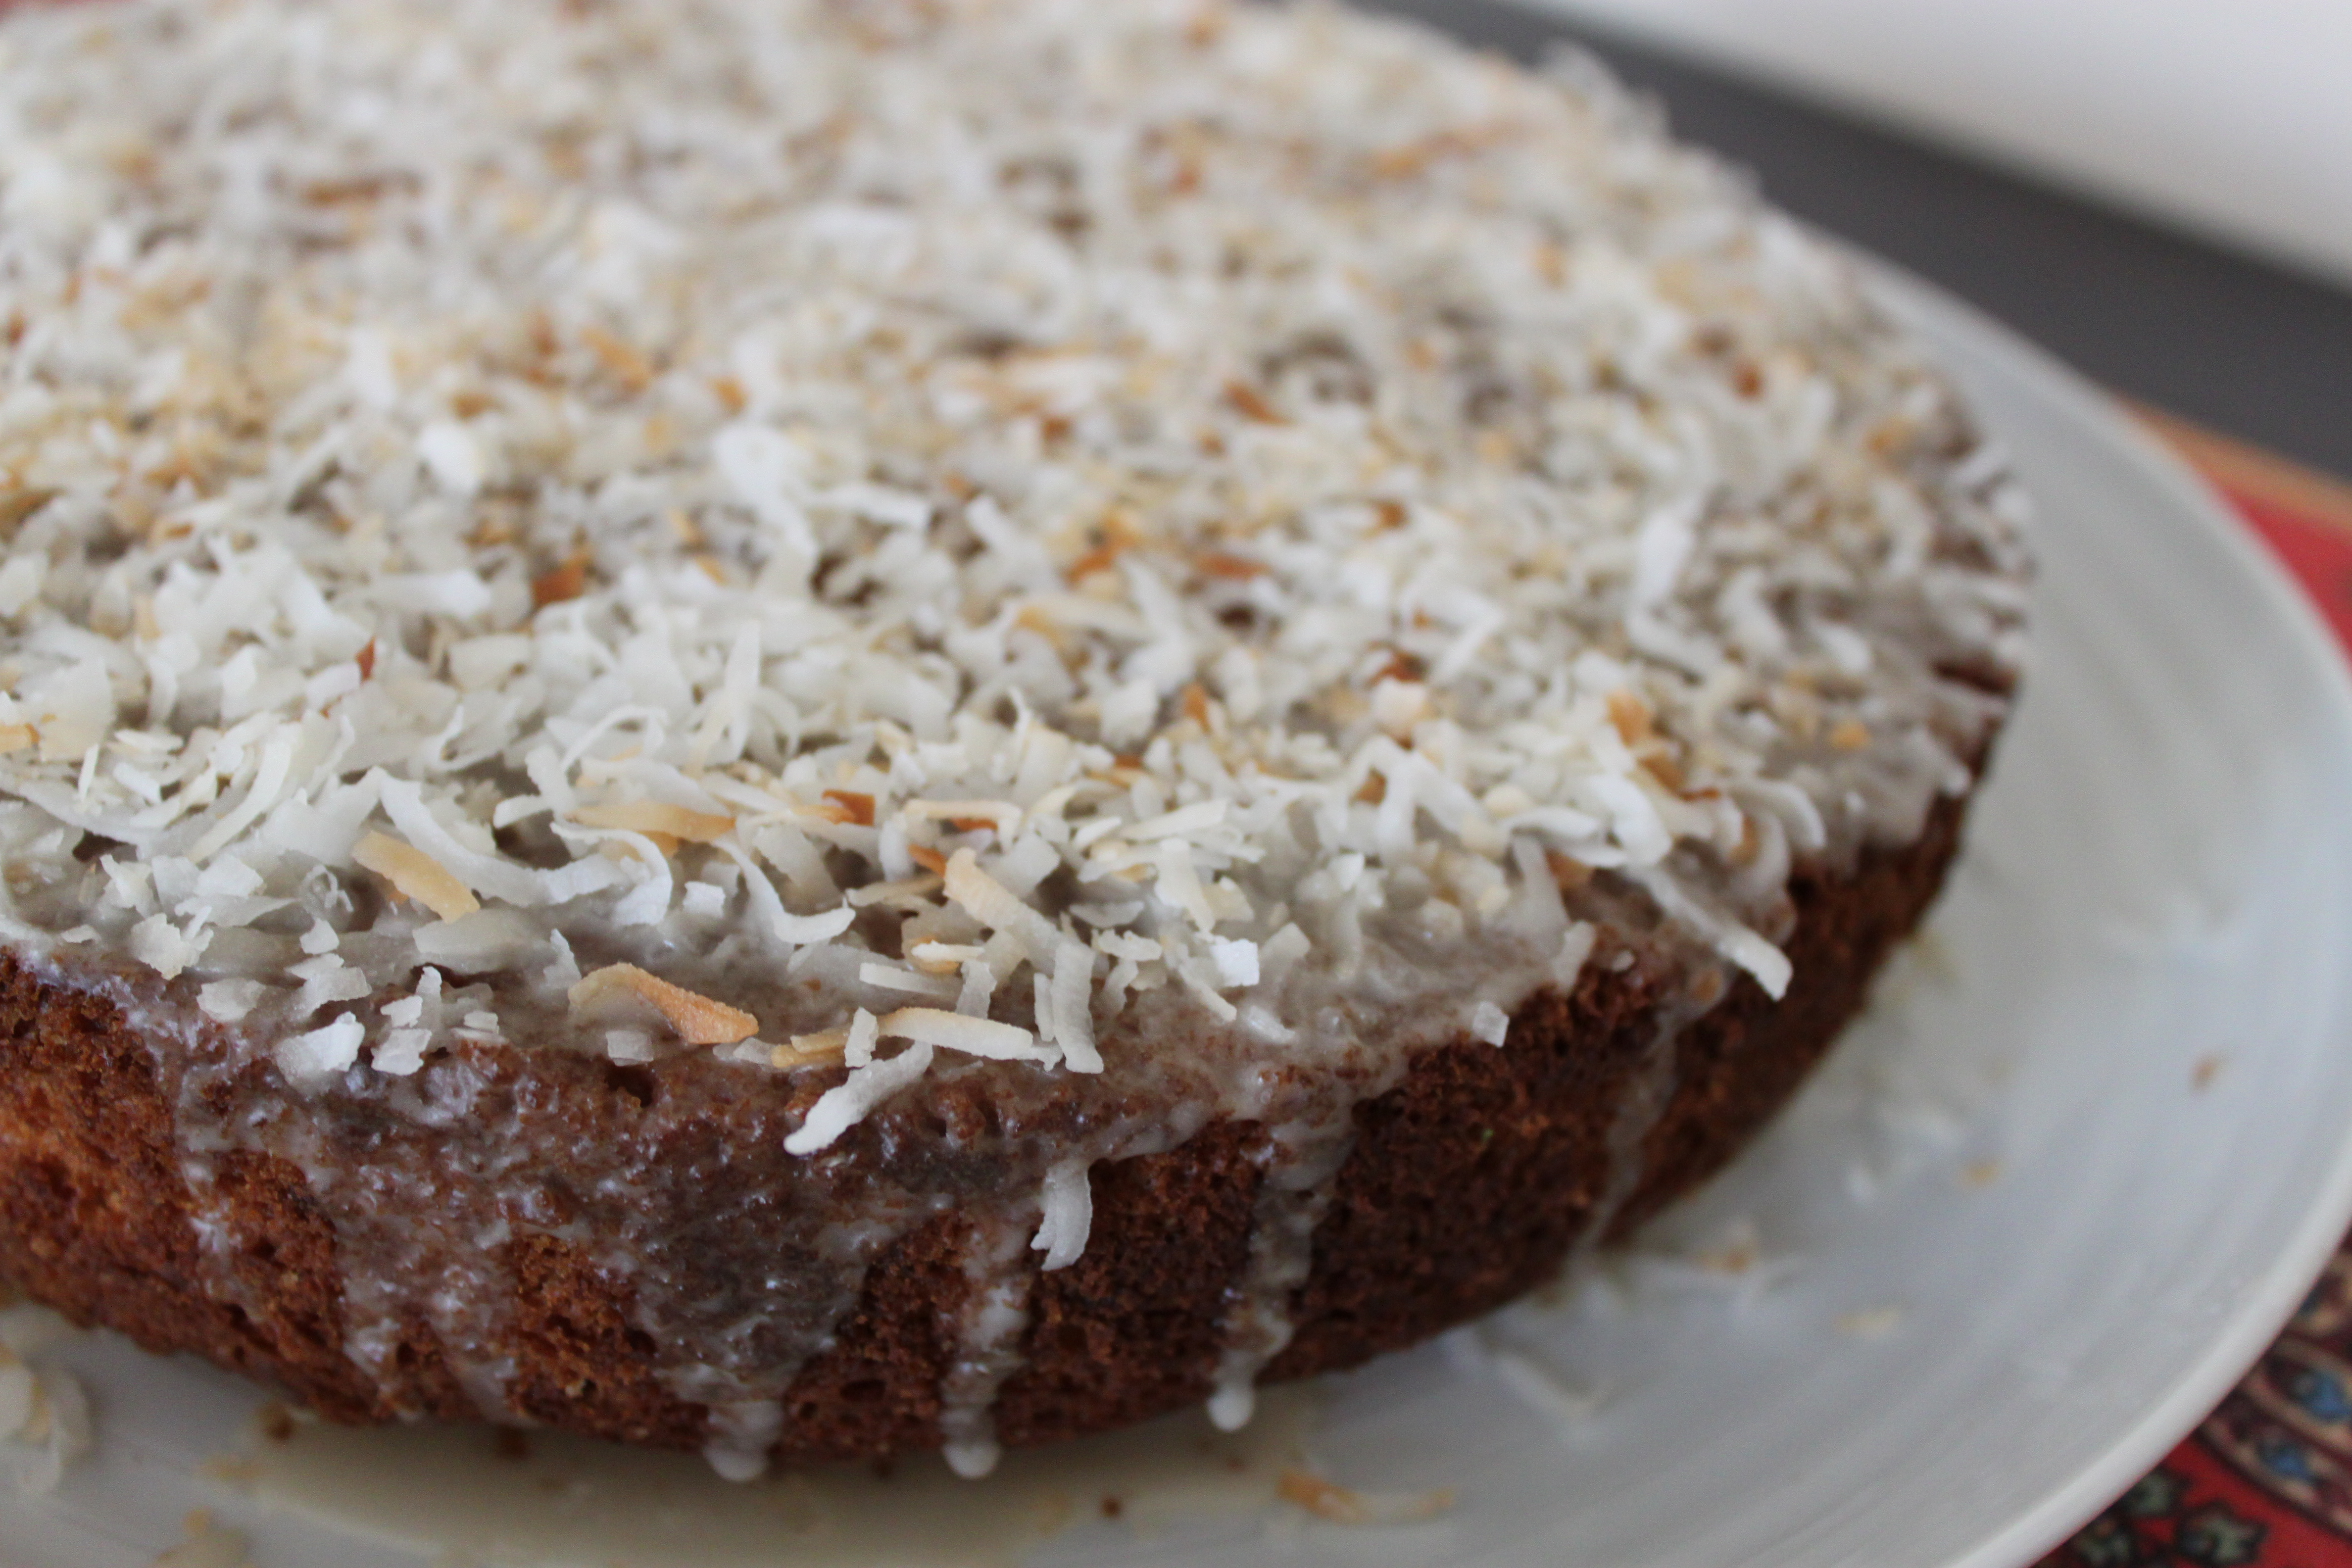 ... with Gremolata, Slow Cooker Baked Potatoes, and Key Lime Coconut Cake